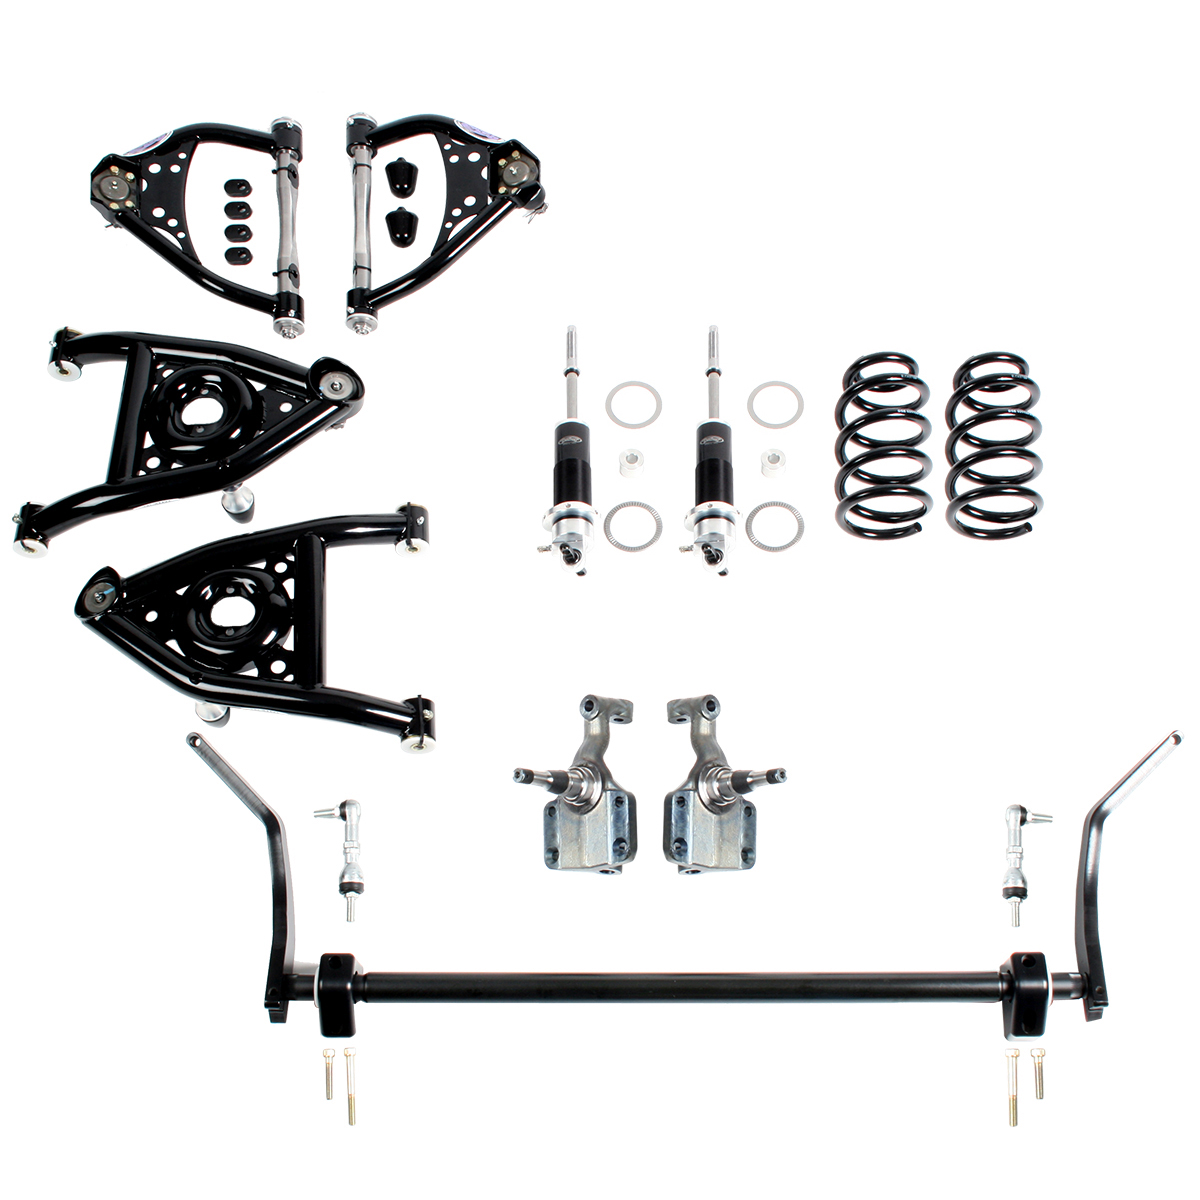 Detroit Speed  Speed Kit 2 Front Suspension Kit with Splined Sway Bar Double Adjustable Shocks 1967 A-Body SBC LS